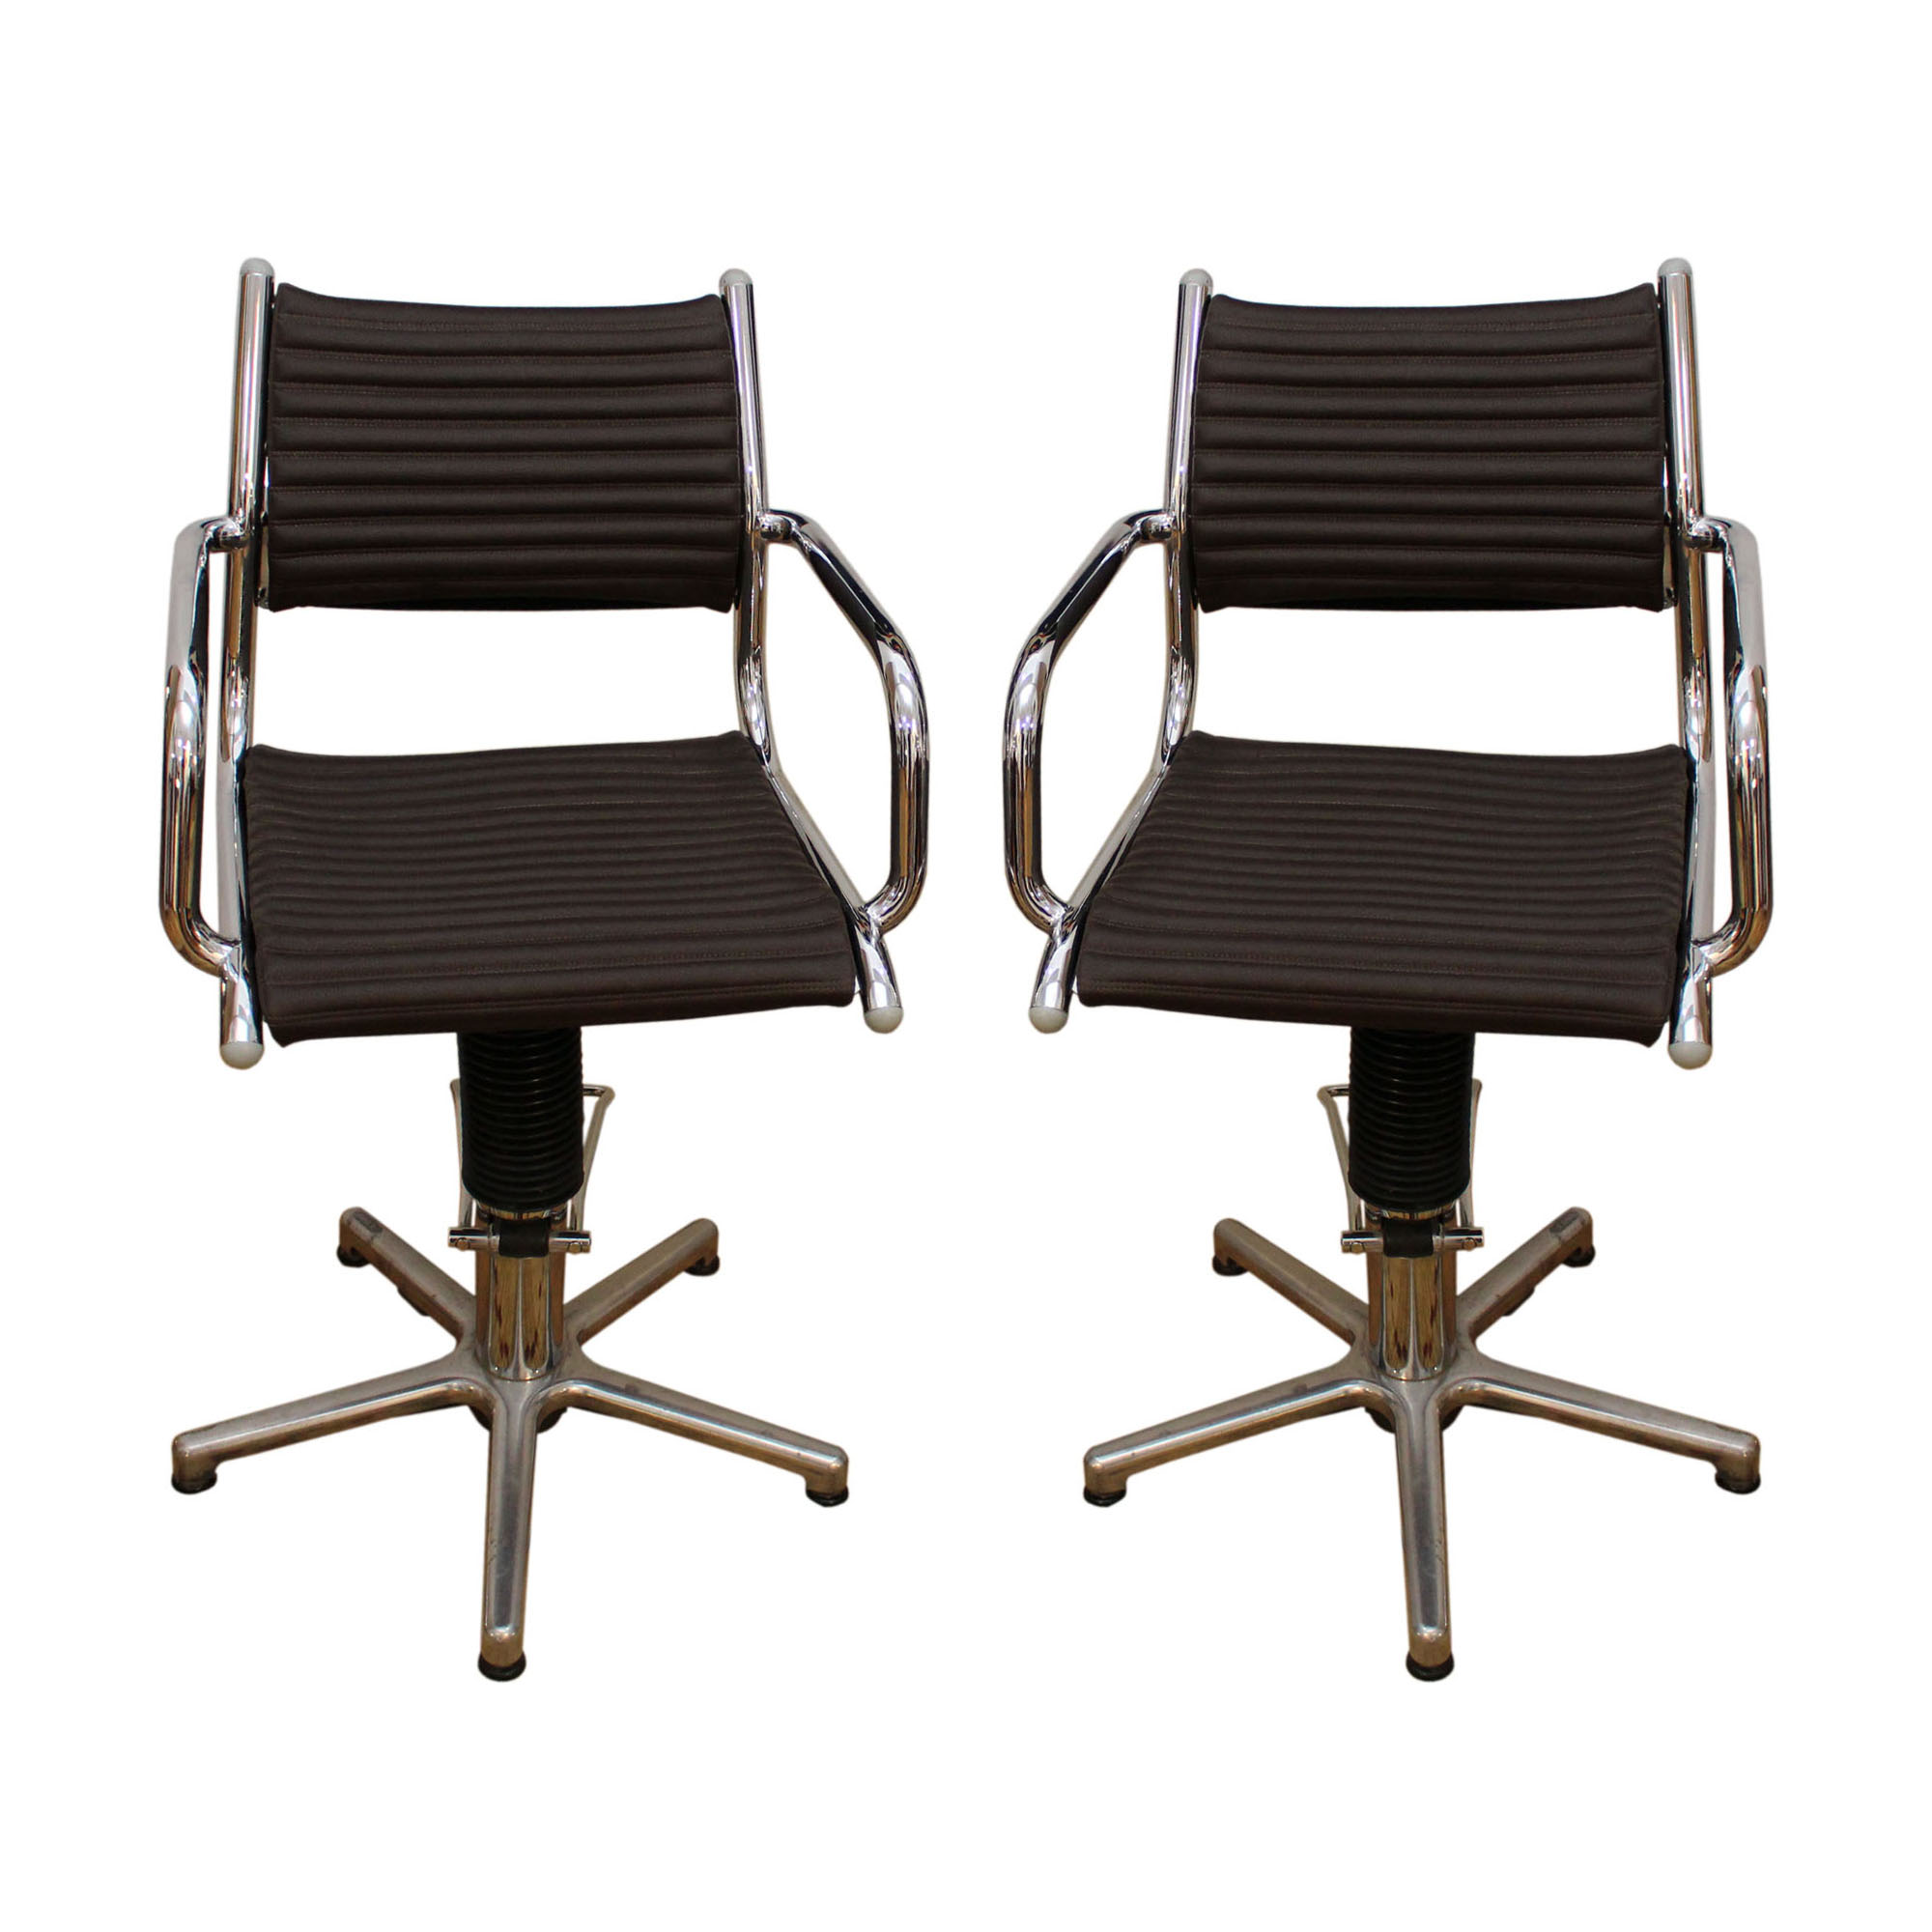 two swivel rotating chairs made in germany by olymp in the 1970s mid century. Black Bedroom Furniture Sets. Home Design Ideas